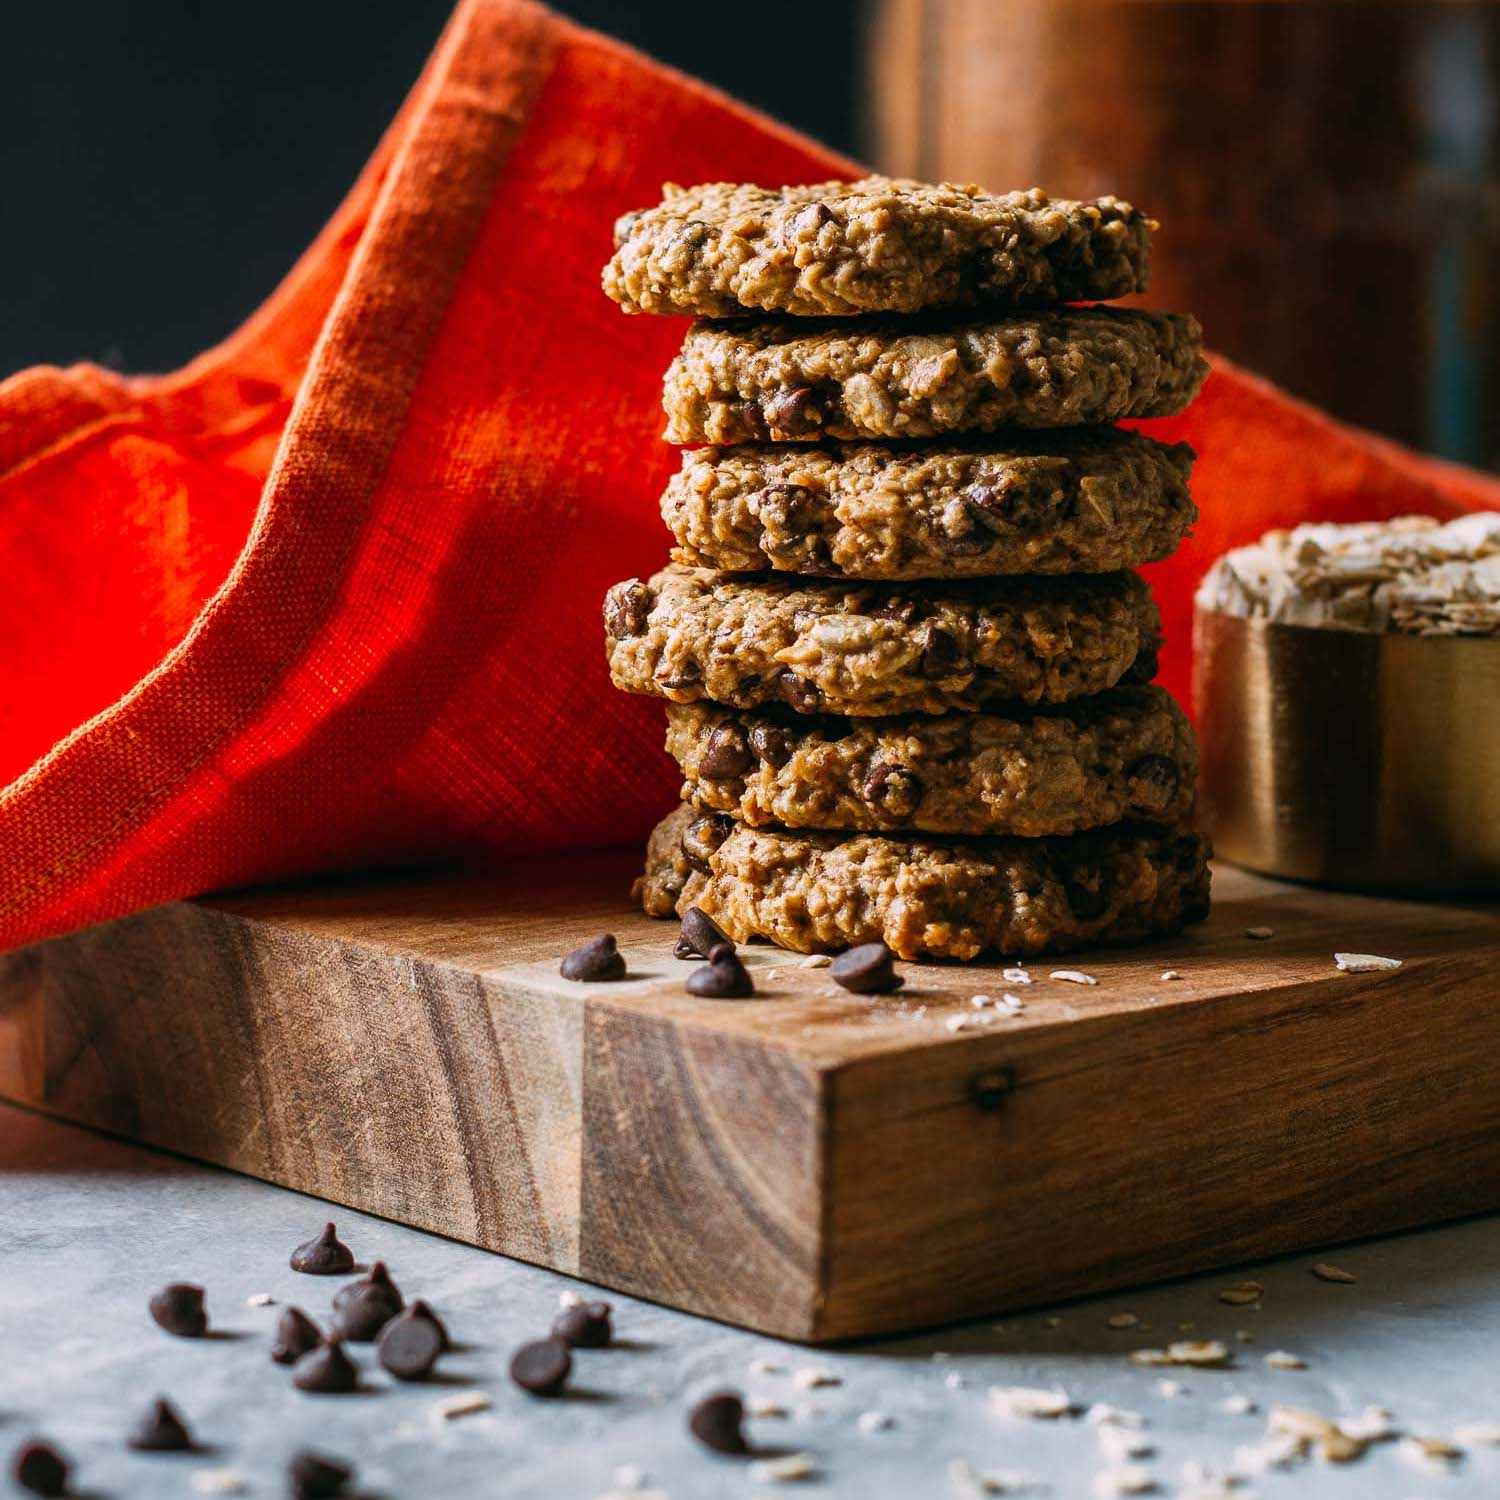 Chewy Chocolate Chip Oatmeal Cookies #harvest #cookies #recipe #nut-free #nondairy #dessert #snack #sweets